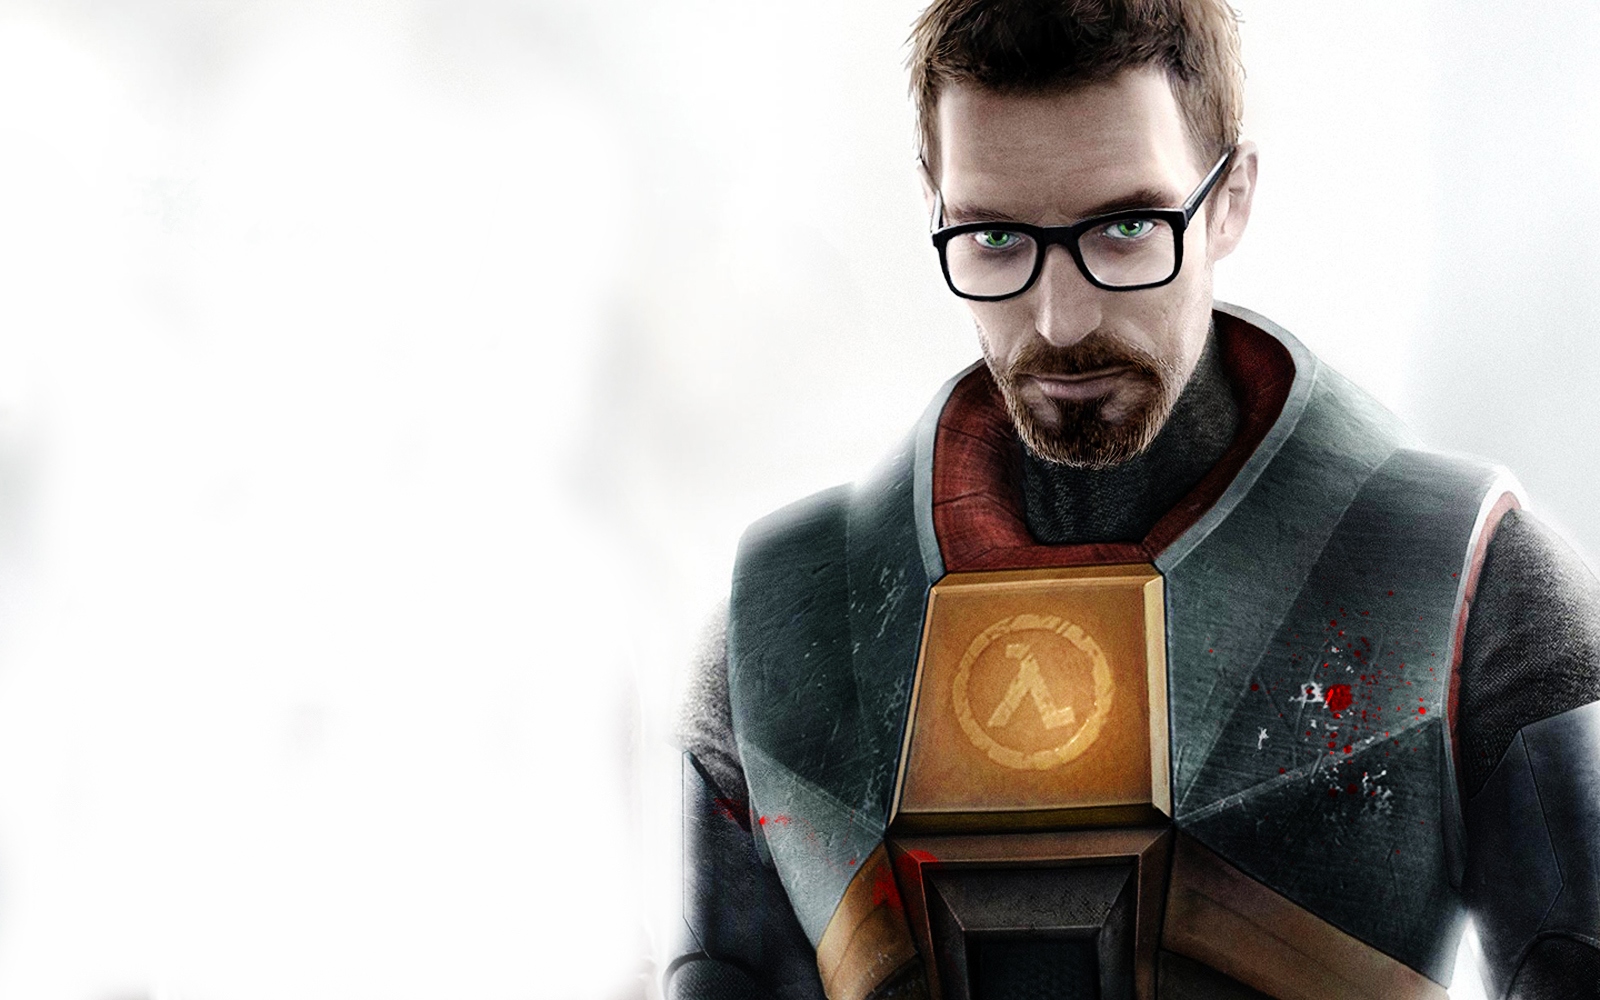 gordon freeman half life - photo #6